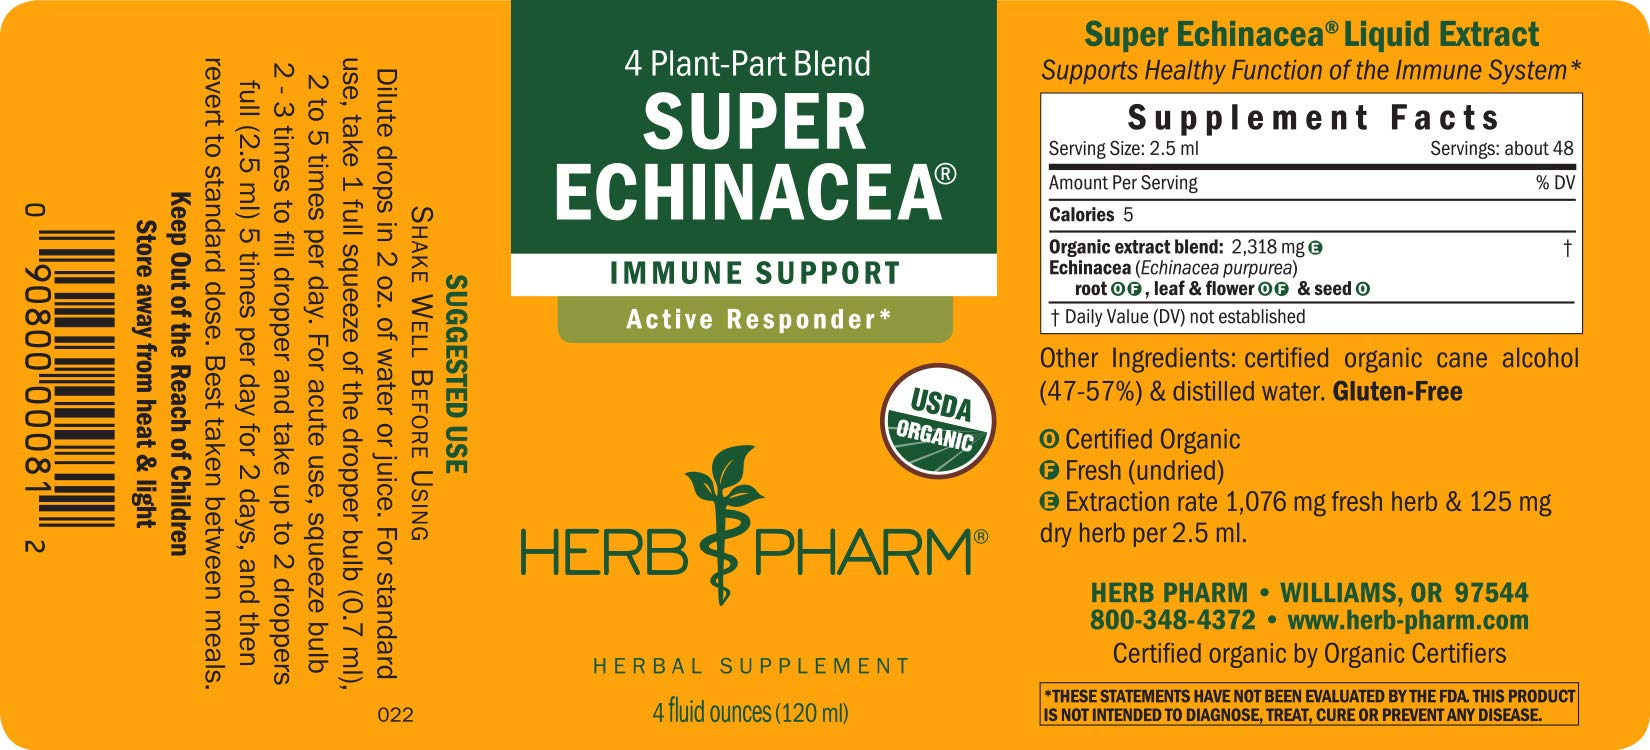 Herb Pharm Certified Organic Super Echinacea Liquid Extract for Active Immune System Support - 4 Ounce by Herb Pharm (Image #7)